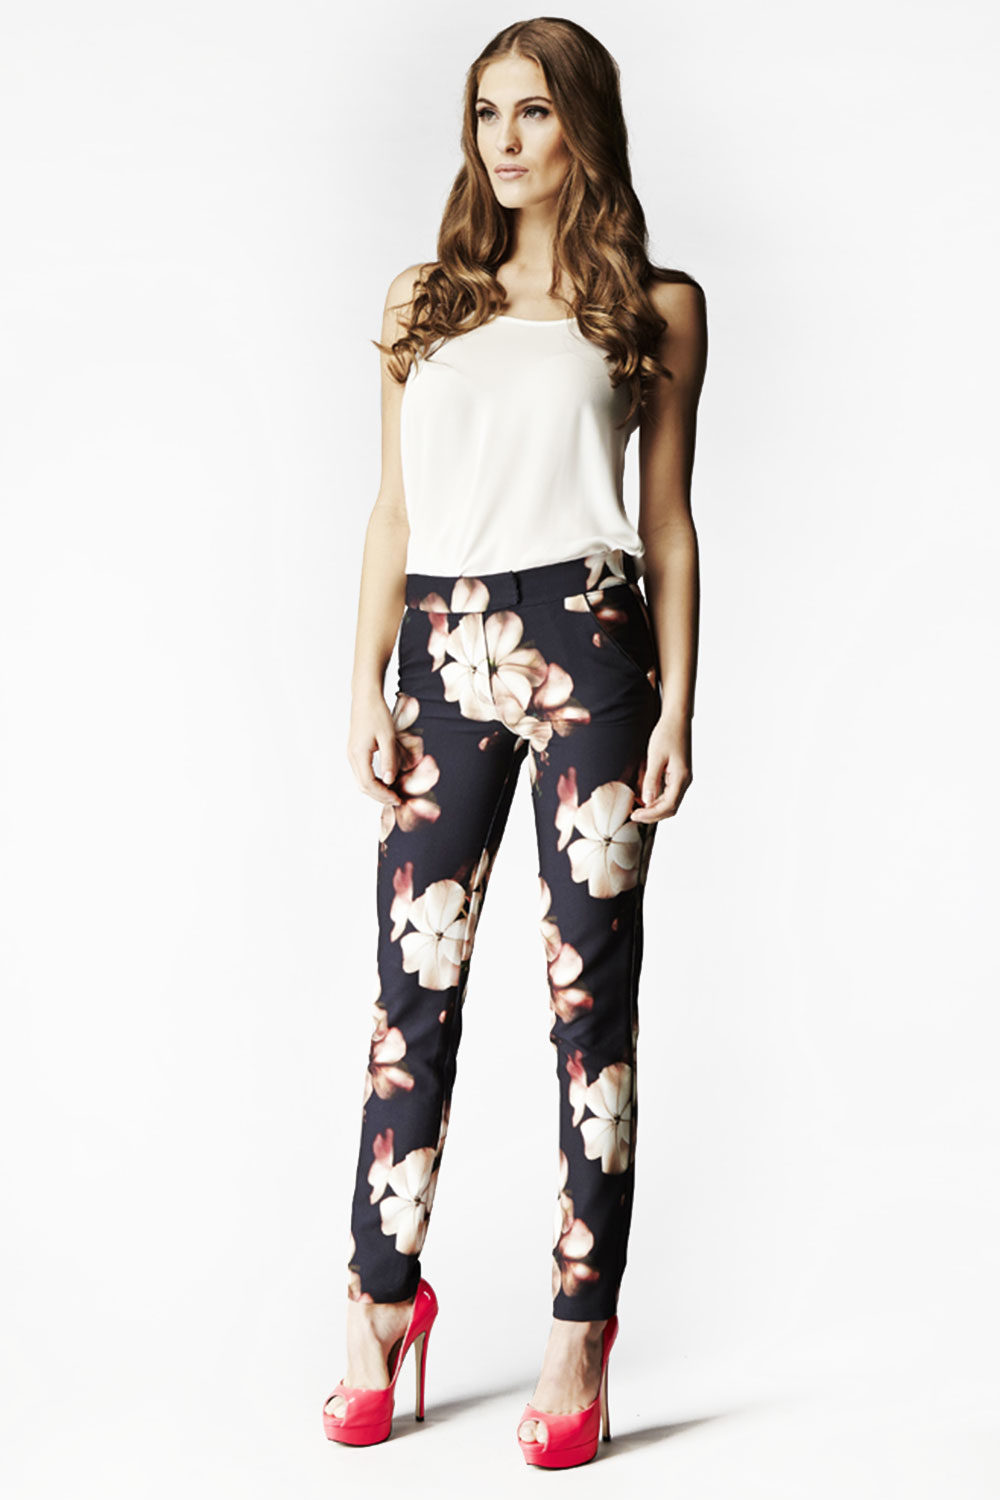 Hybrid Fashion Trixie 1084 Black Floral Cigarette Trousers